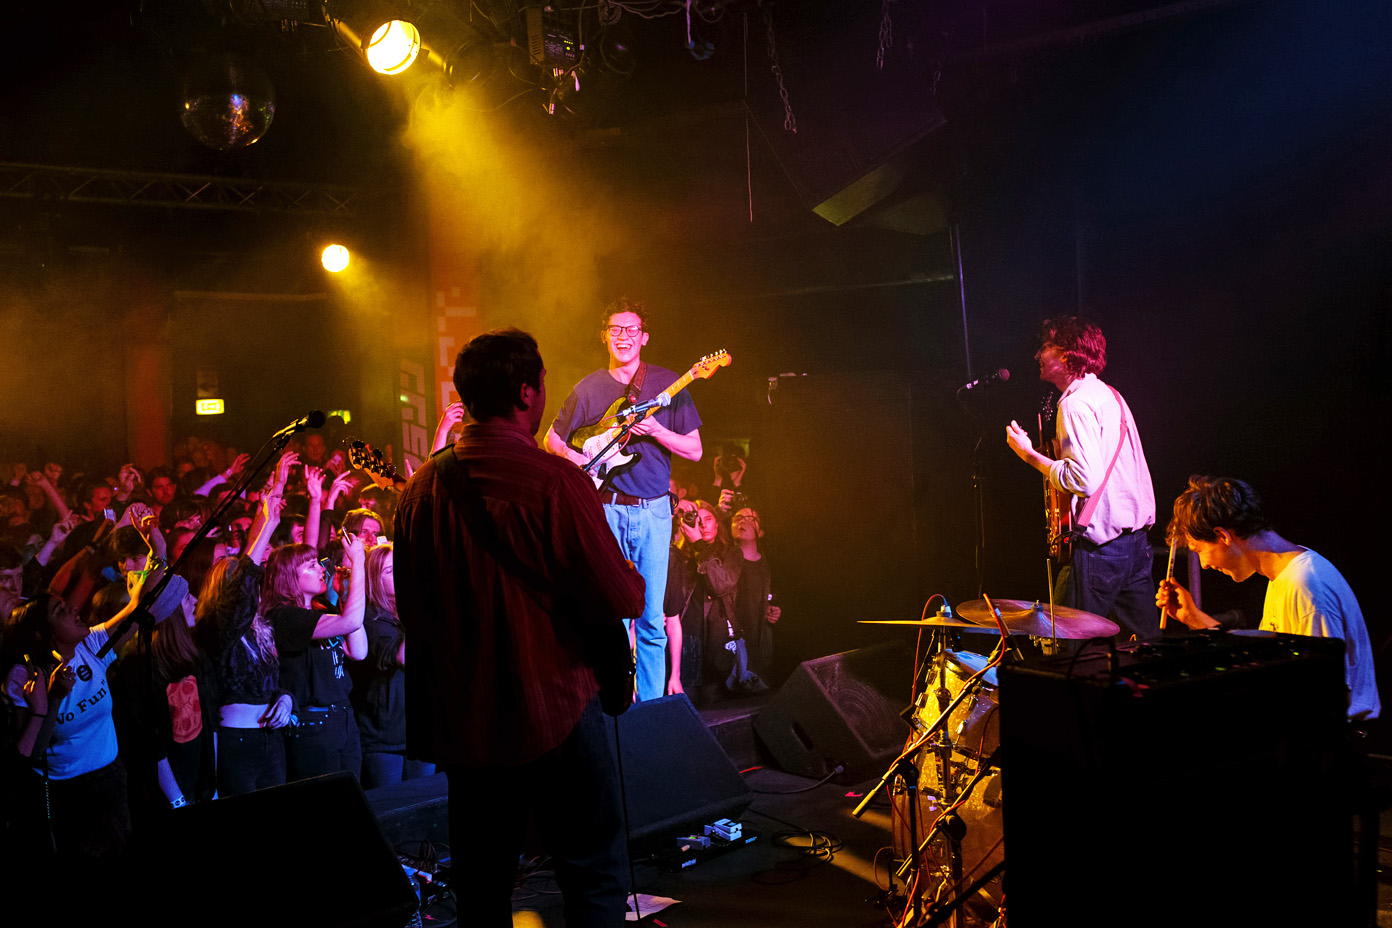 The Magic Gang at Plug in Sheffield